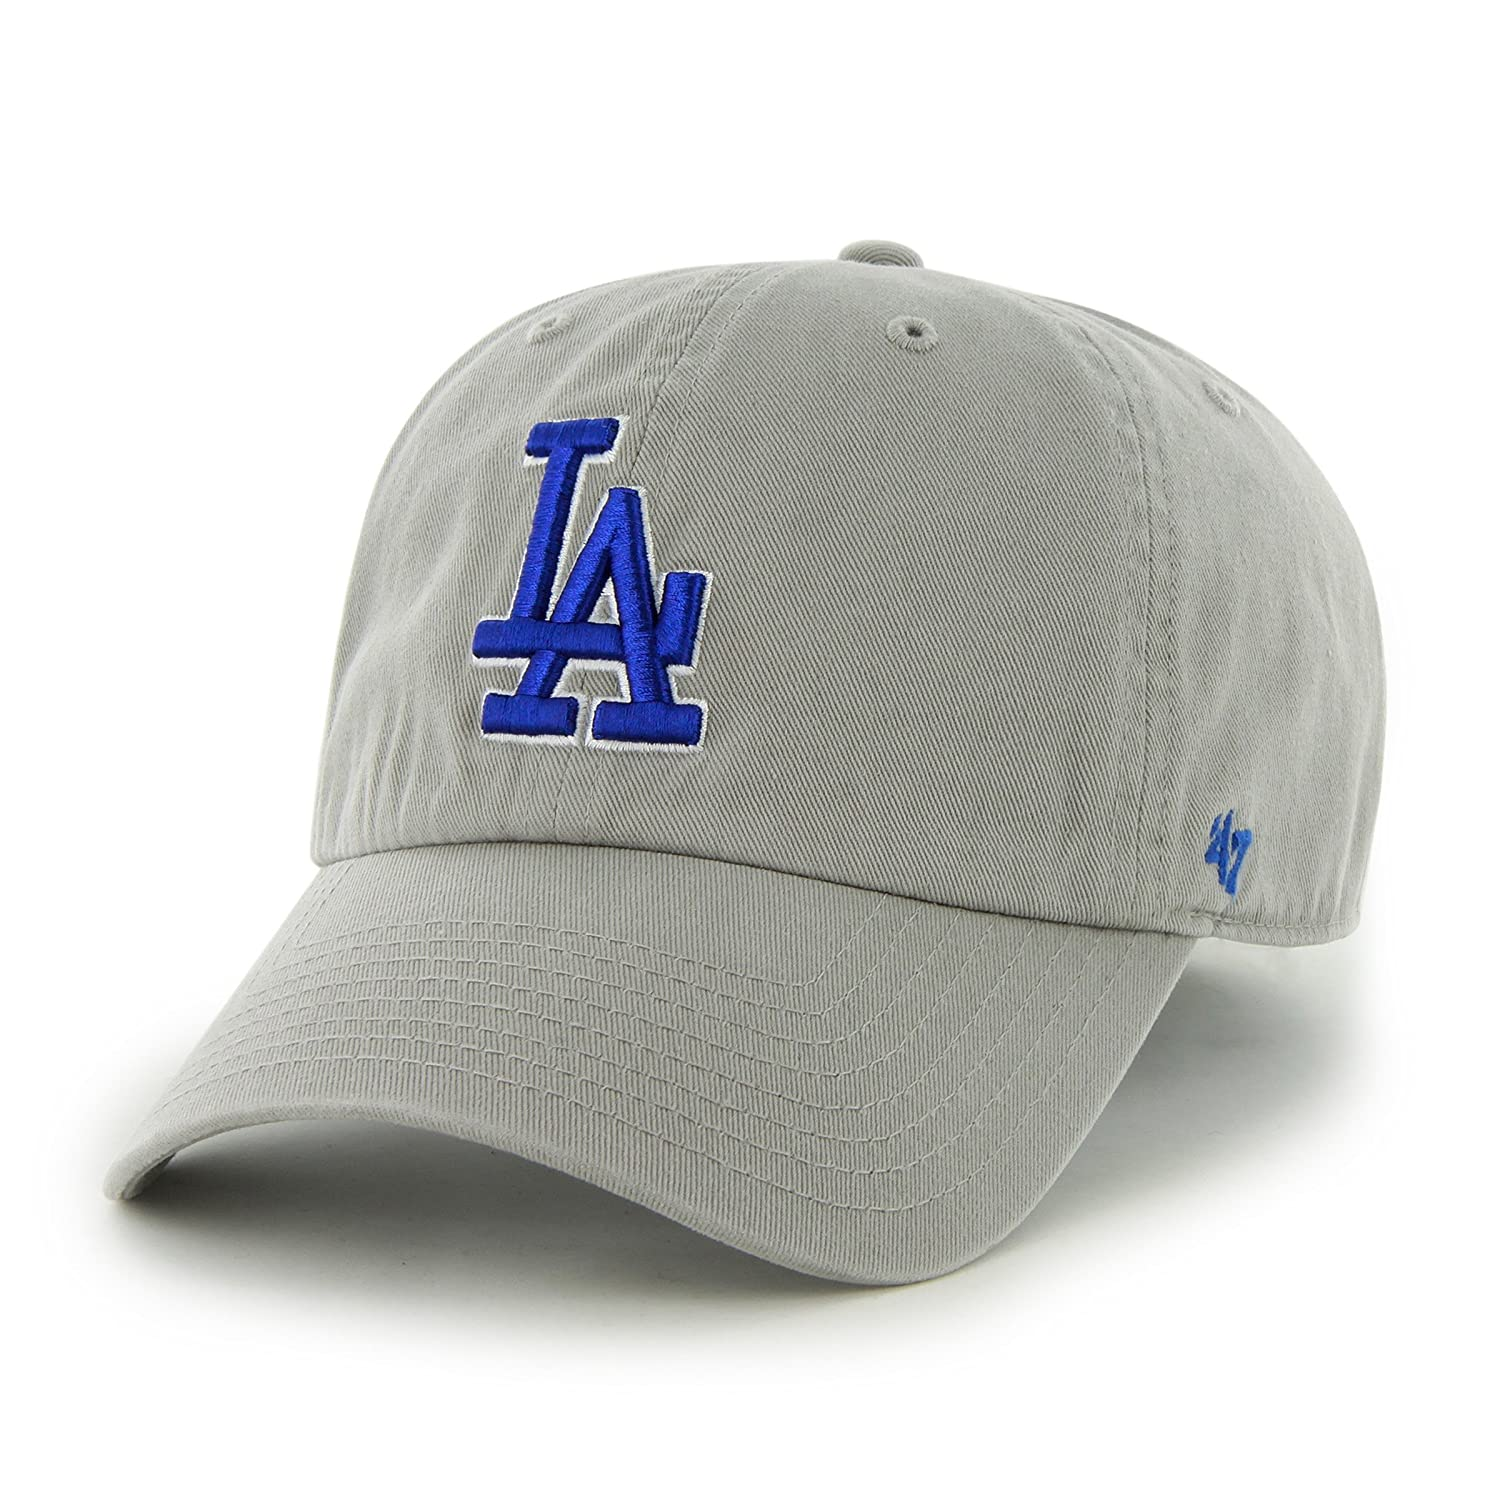 0ba764a0 MLB Los Angeles Dodgers '47 Brand Clean Up Adjustable Cap, One Size, Gray